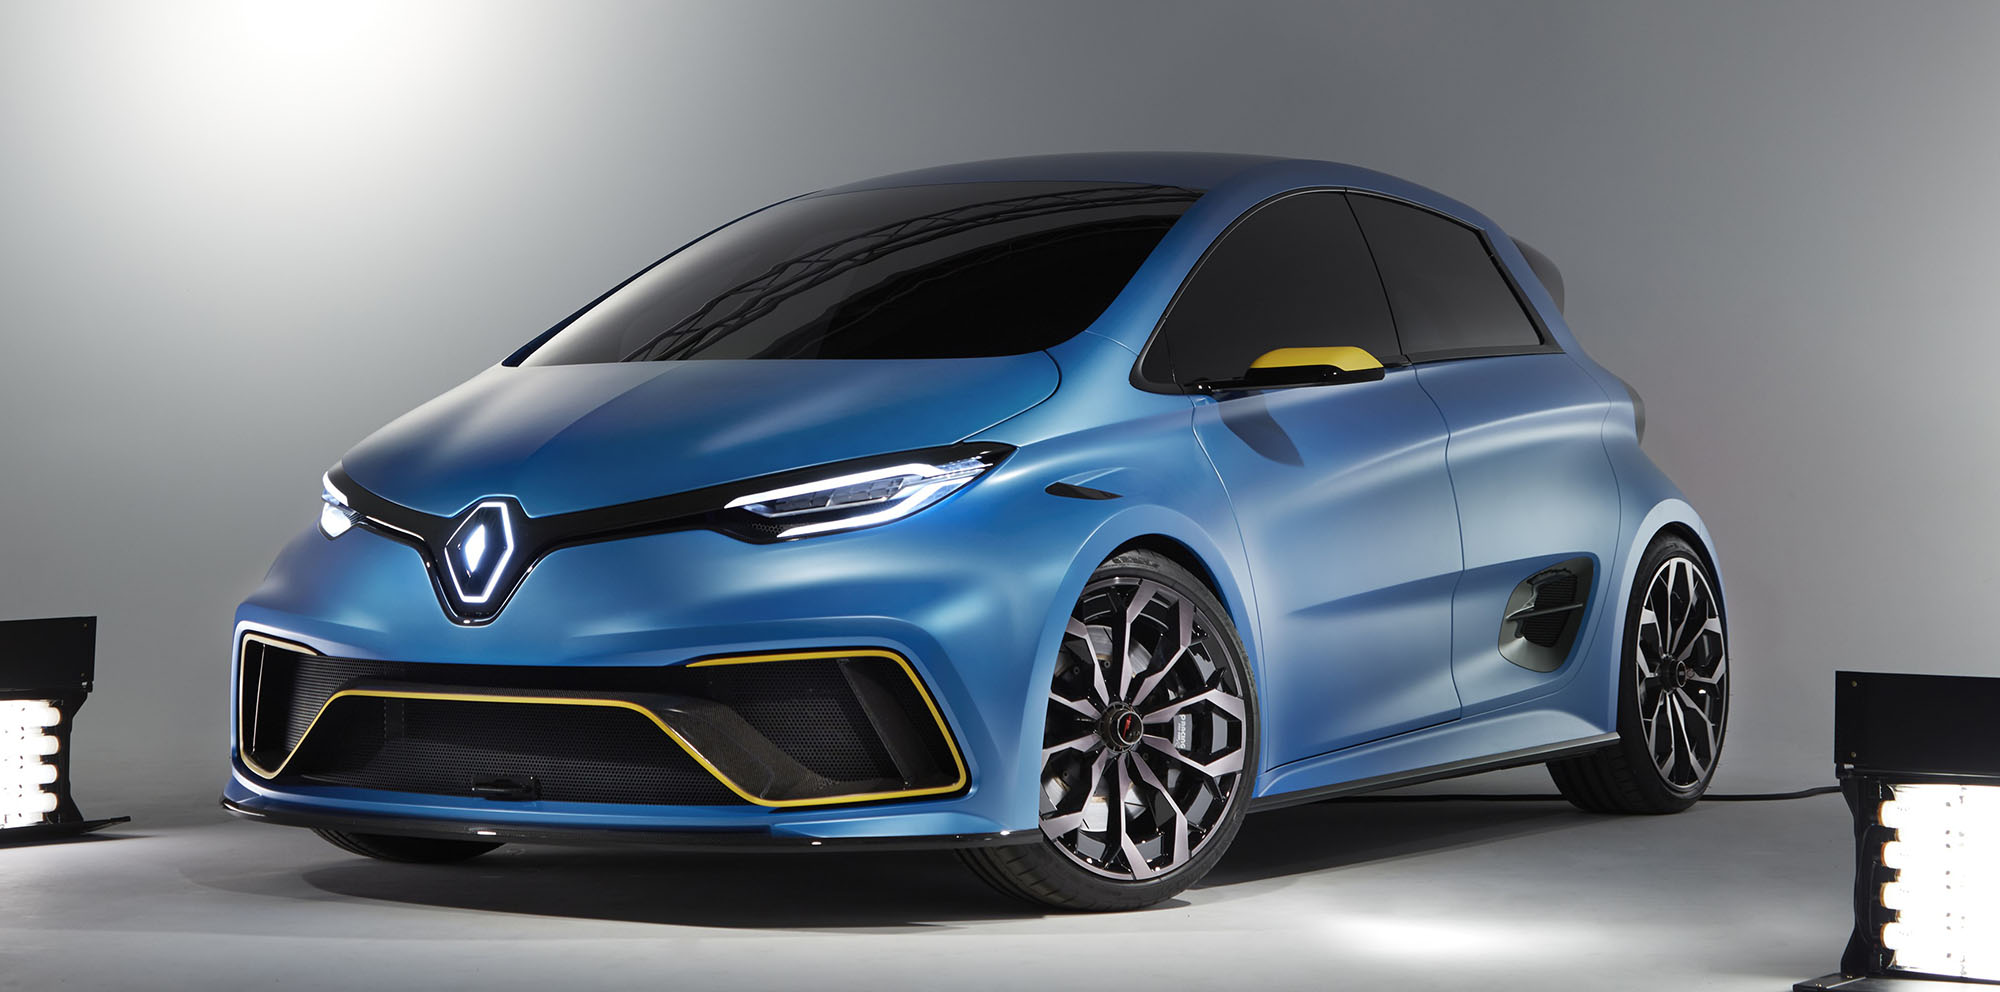 renault zoe e sport concept unveiled in geneva photos caradvice. Black Bedroom Furniture Sets. Home Design Ideas